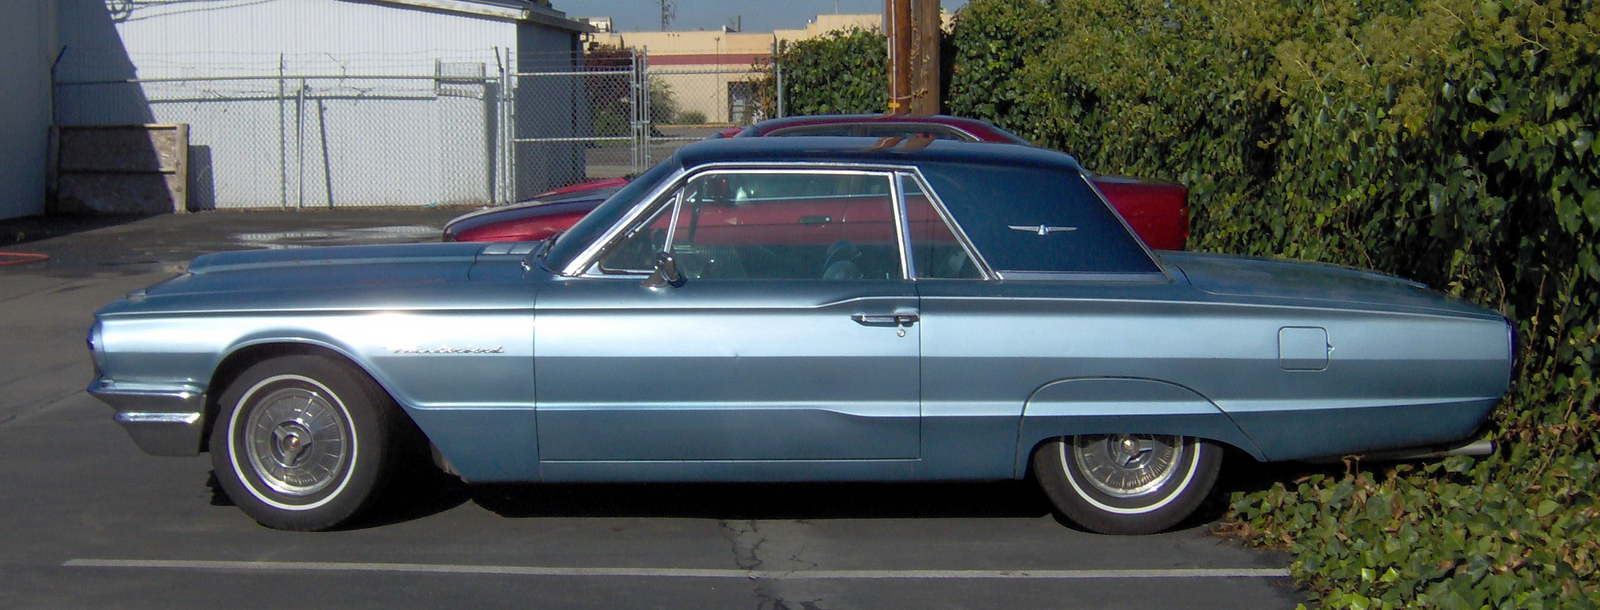 1964 ford thunderbird paint colors. Cars Review. Best American Auto & Cars Review